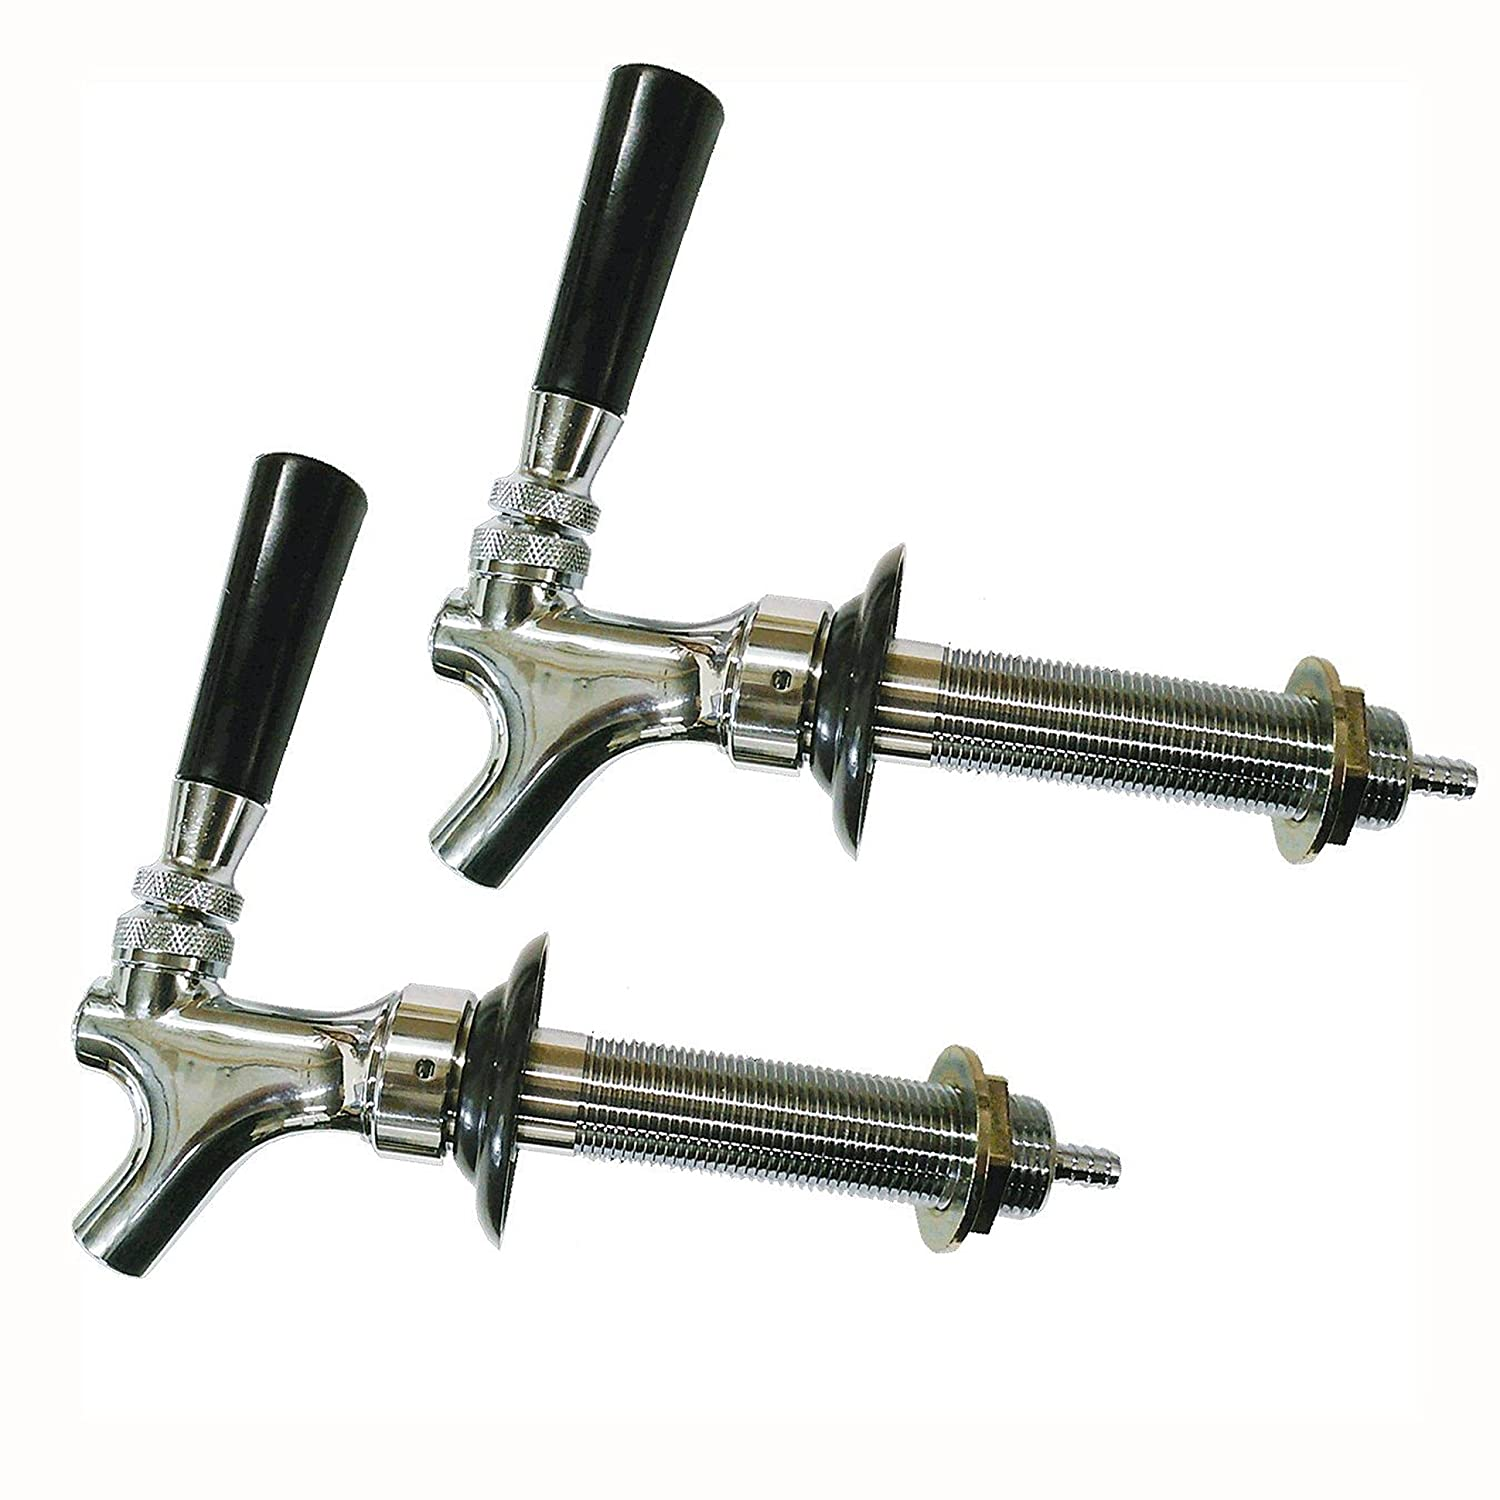 Amazon.com: HomeBrewStuff Chrome Draft Beer Faucet and 4 1/2 ...